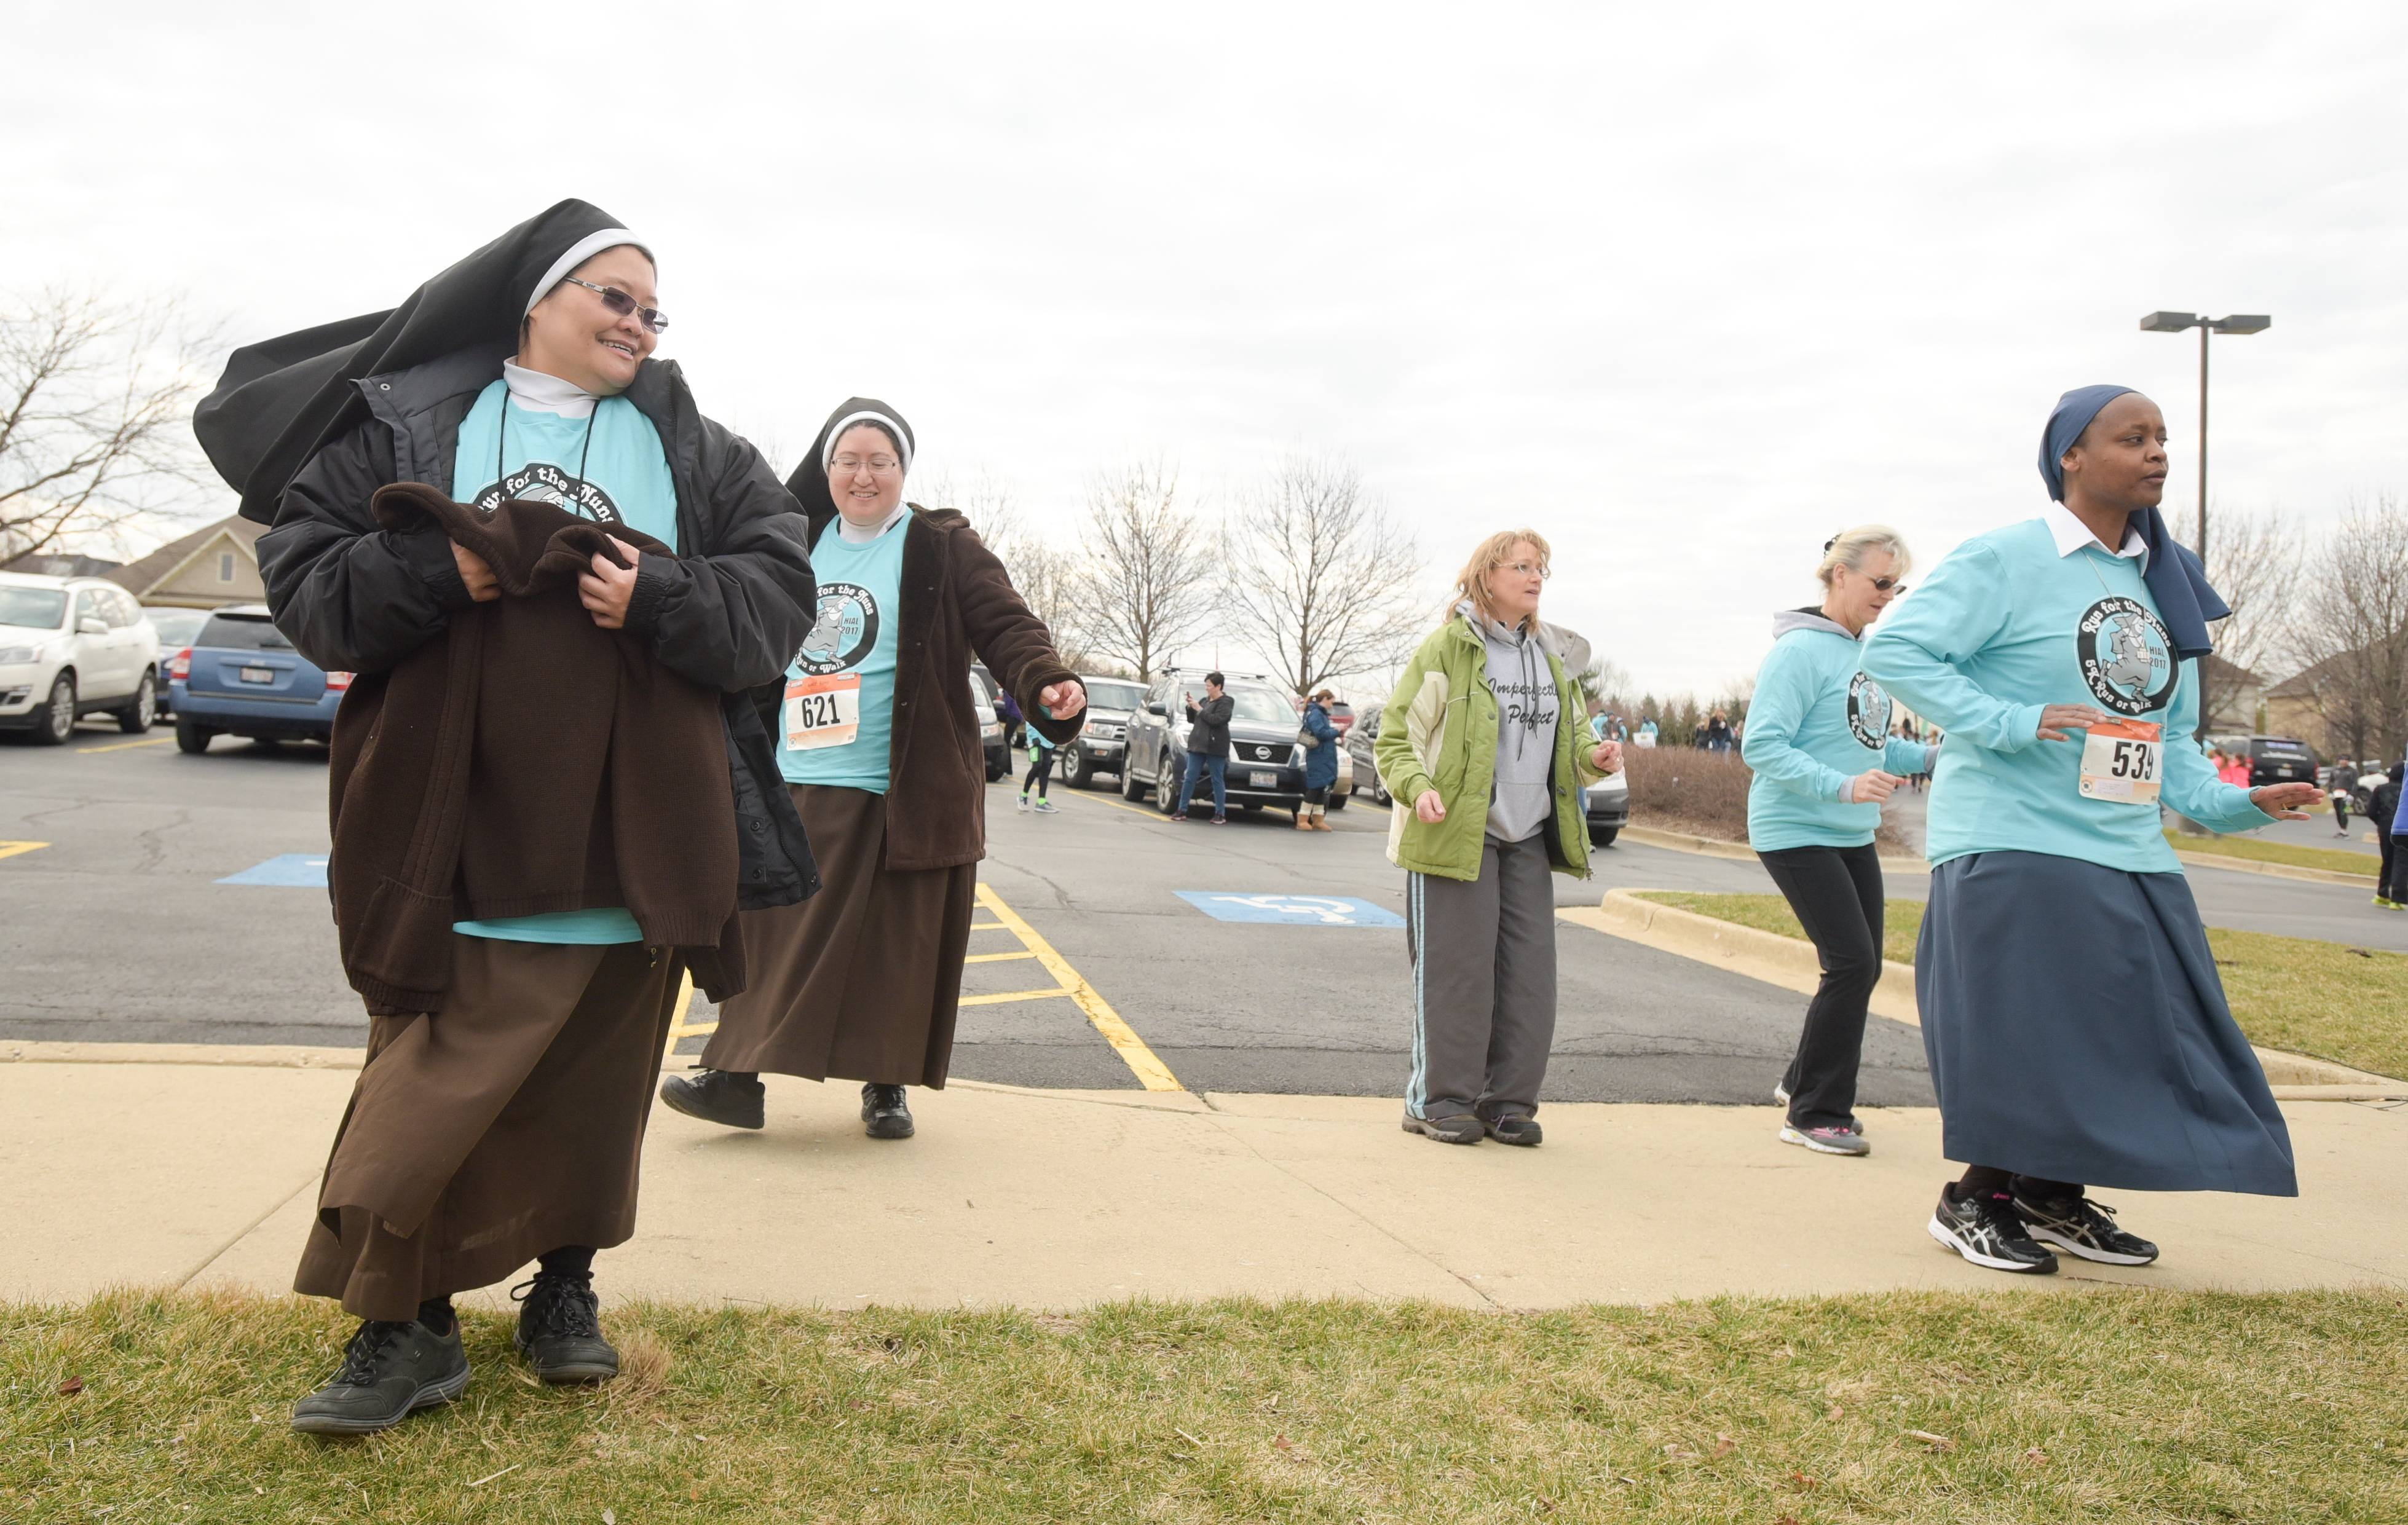 Sr. Rose Therese di Castro dances along with other runners before the start of the 3rd annual Run For The Nuns 5K Run/Walk, Sunday in South Elgin.